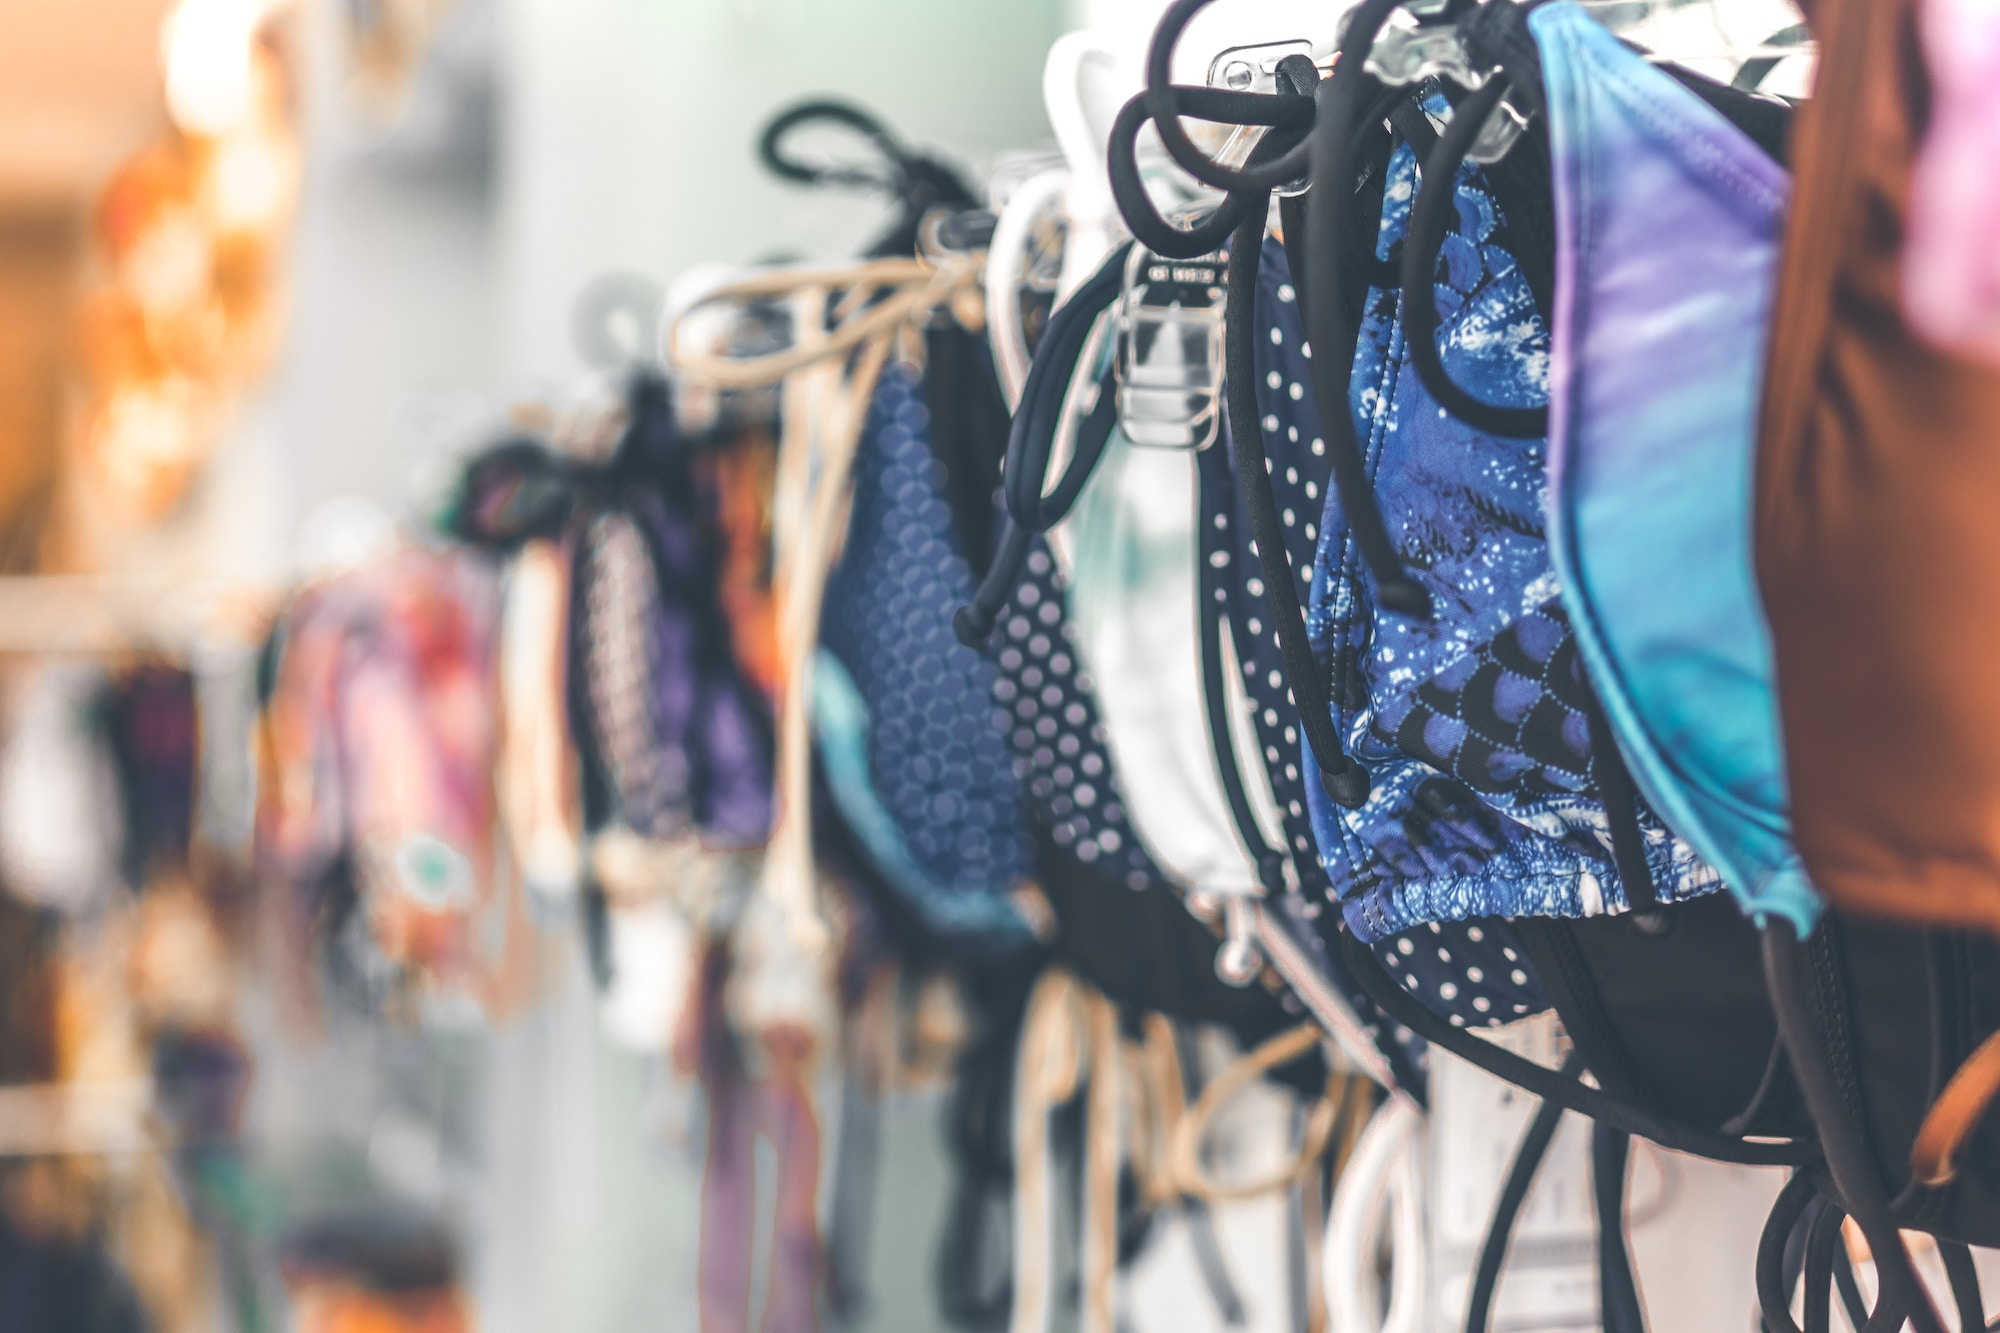 HiP Paris Blog tells you about one writer's experience bikini shopping in Paris and the selection of swimsuits she found at the BHV.